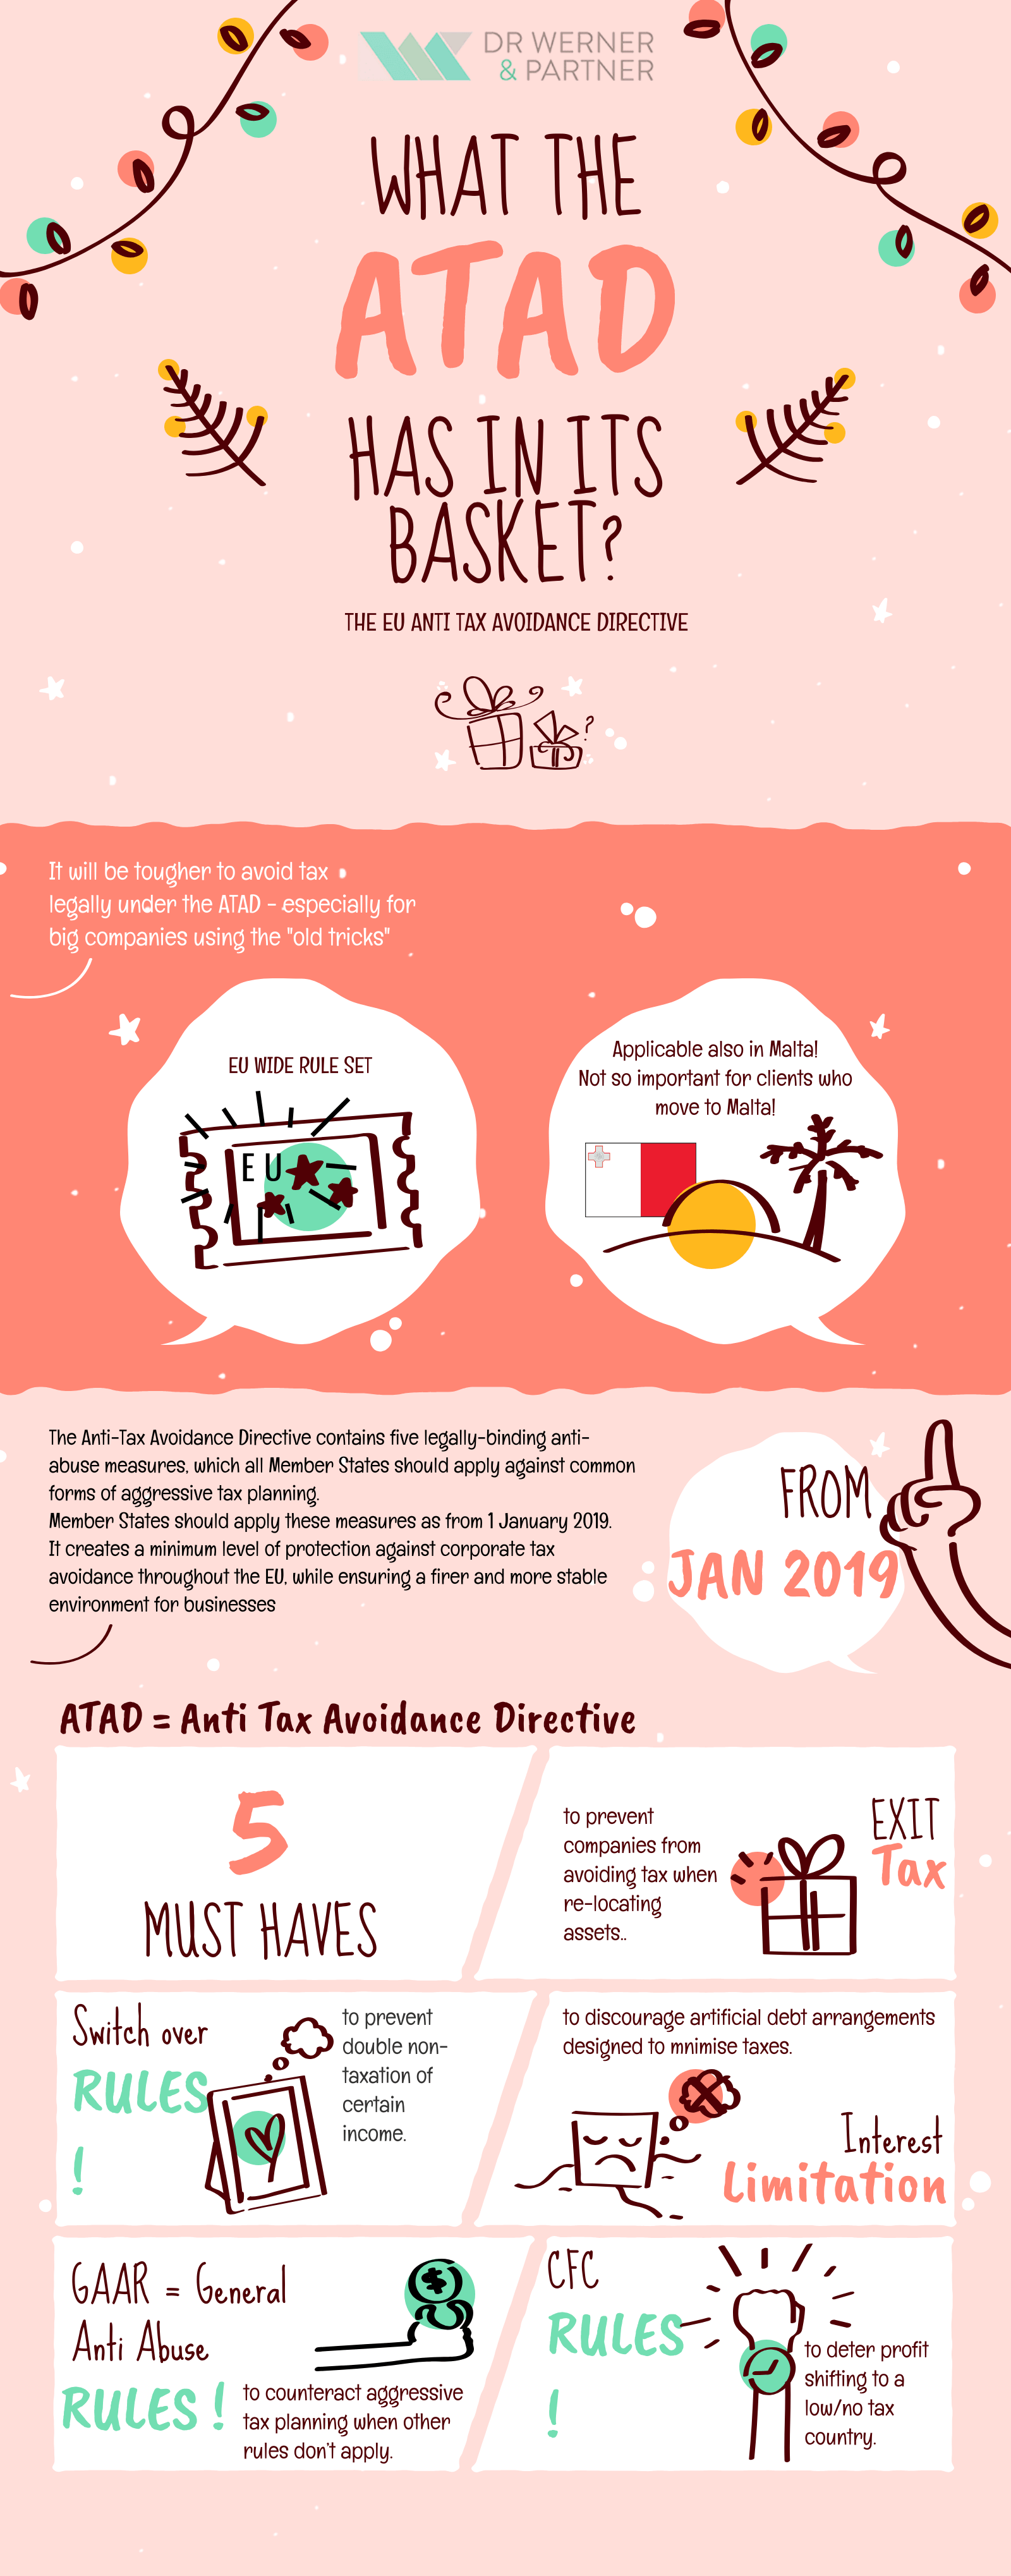 Infographic about Anti-Tax Avoidance Directive in Malta